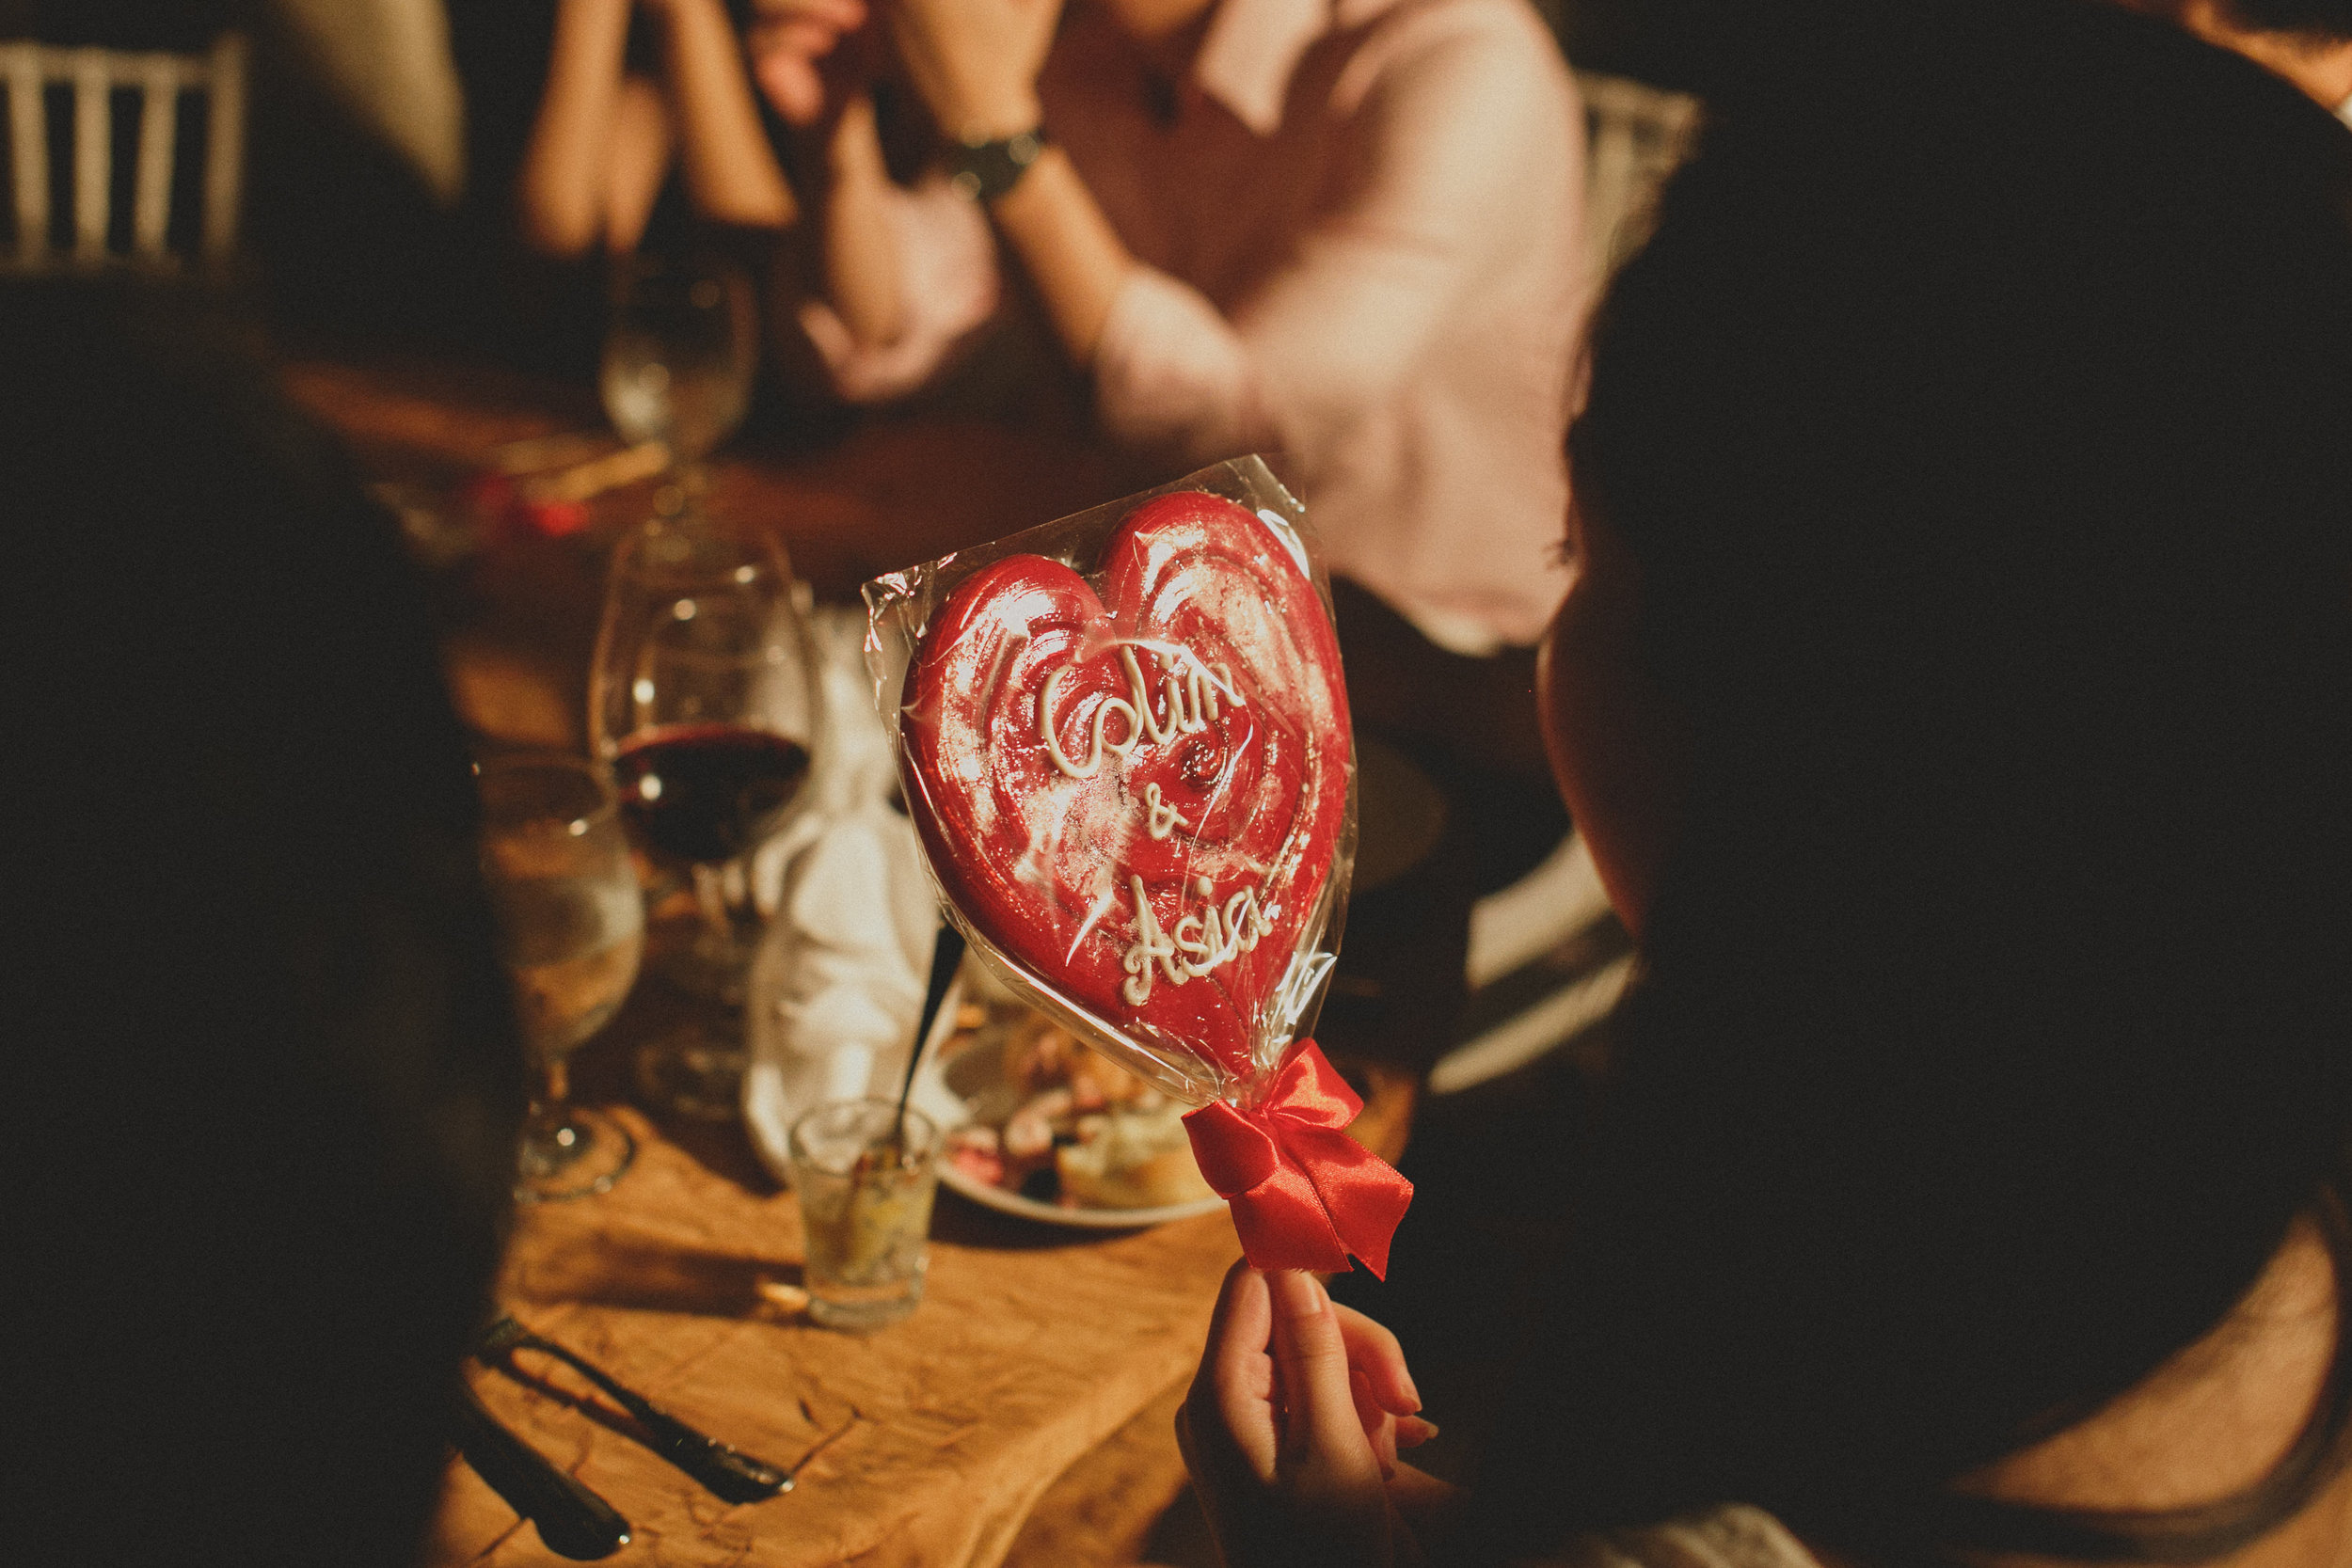 wedding favour: bespoke hart-shaped lollipop with the newly weds names